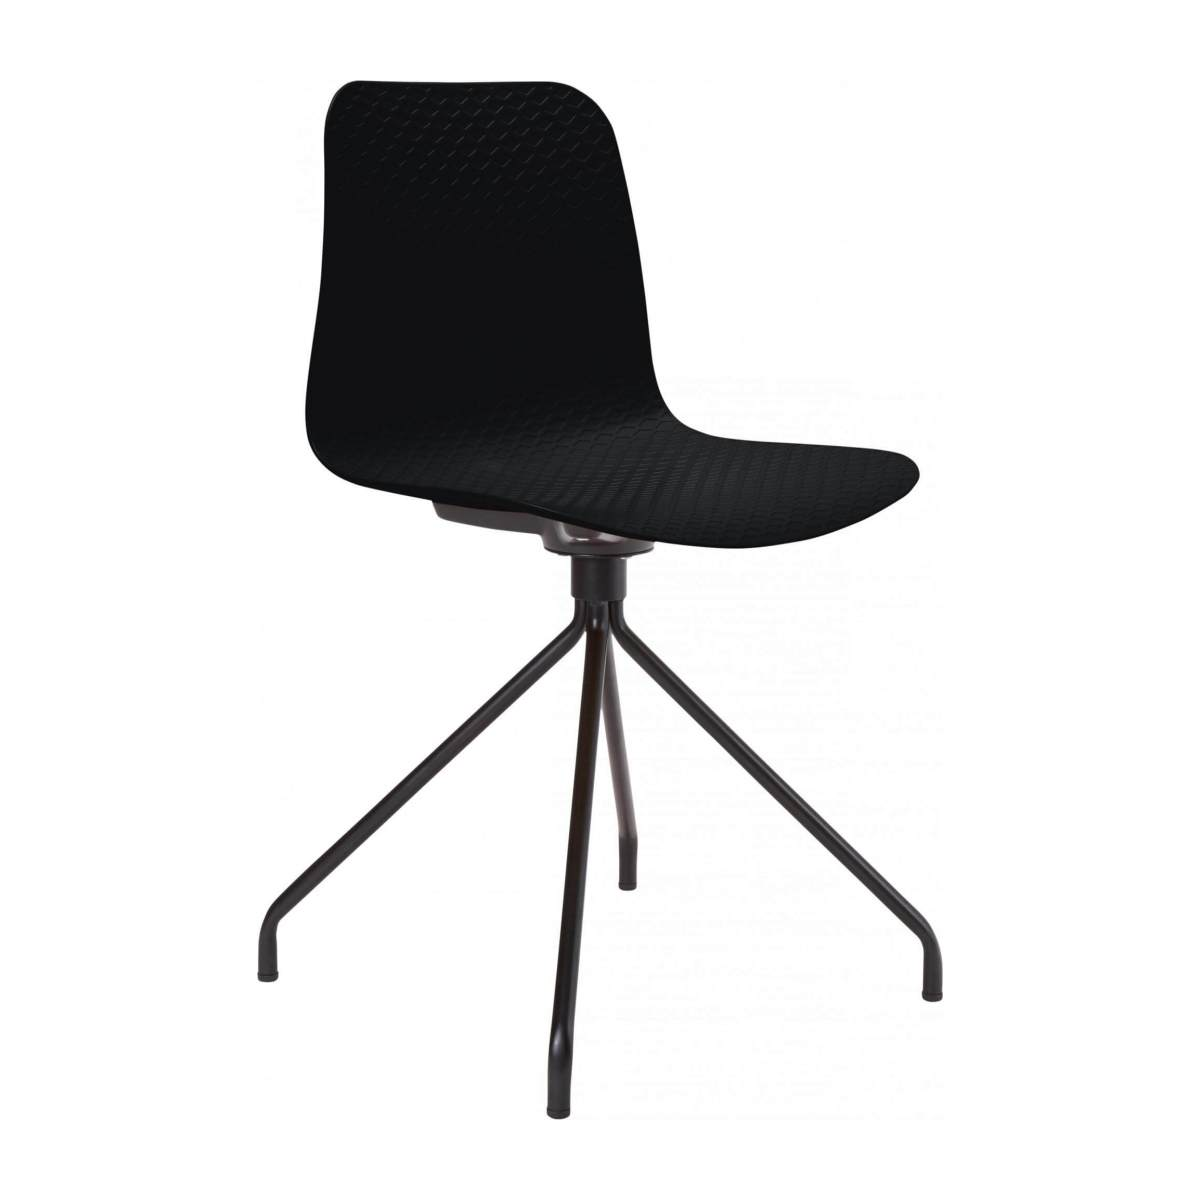 Black chair in polypropylene and lacquered steel legs n°2